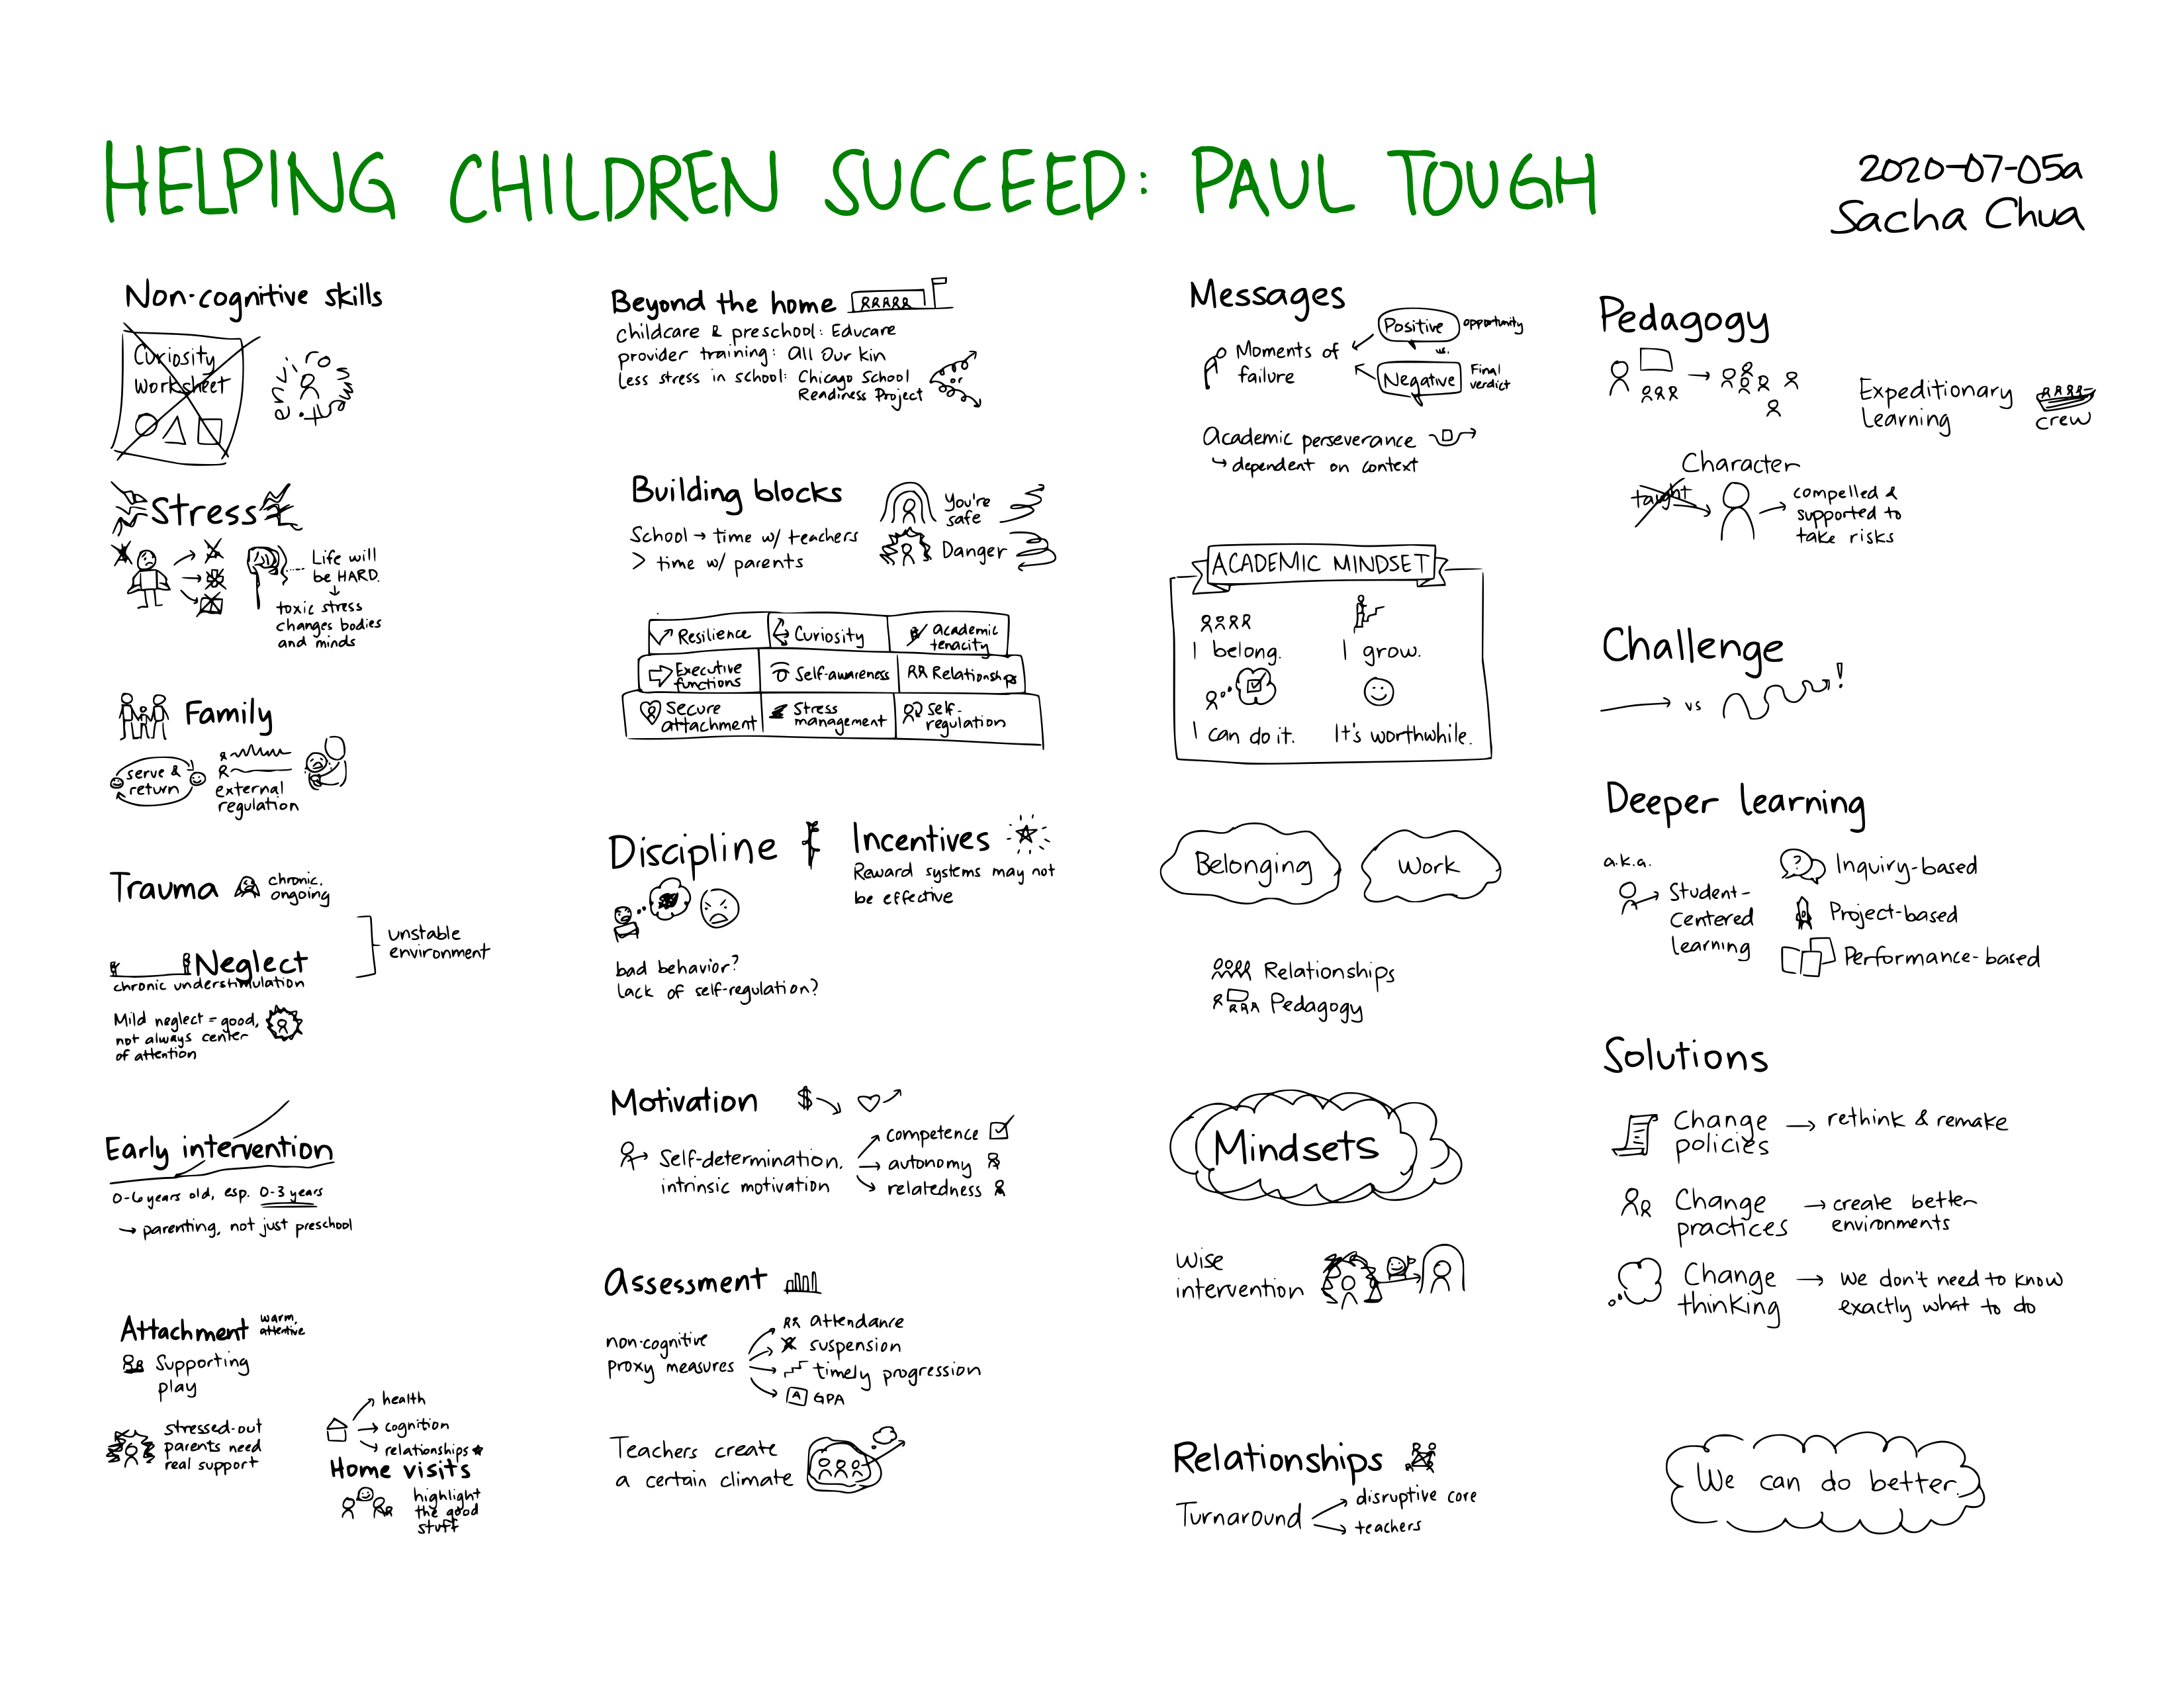 2020-07-05a Helping Children Succeed - Paul Tough #book #education